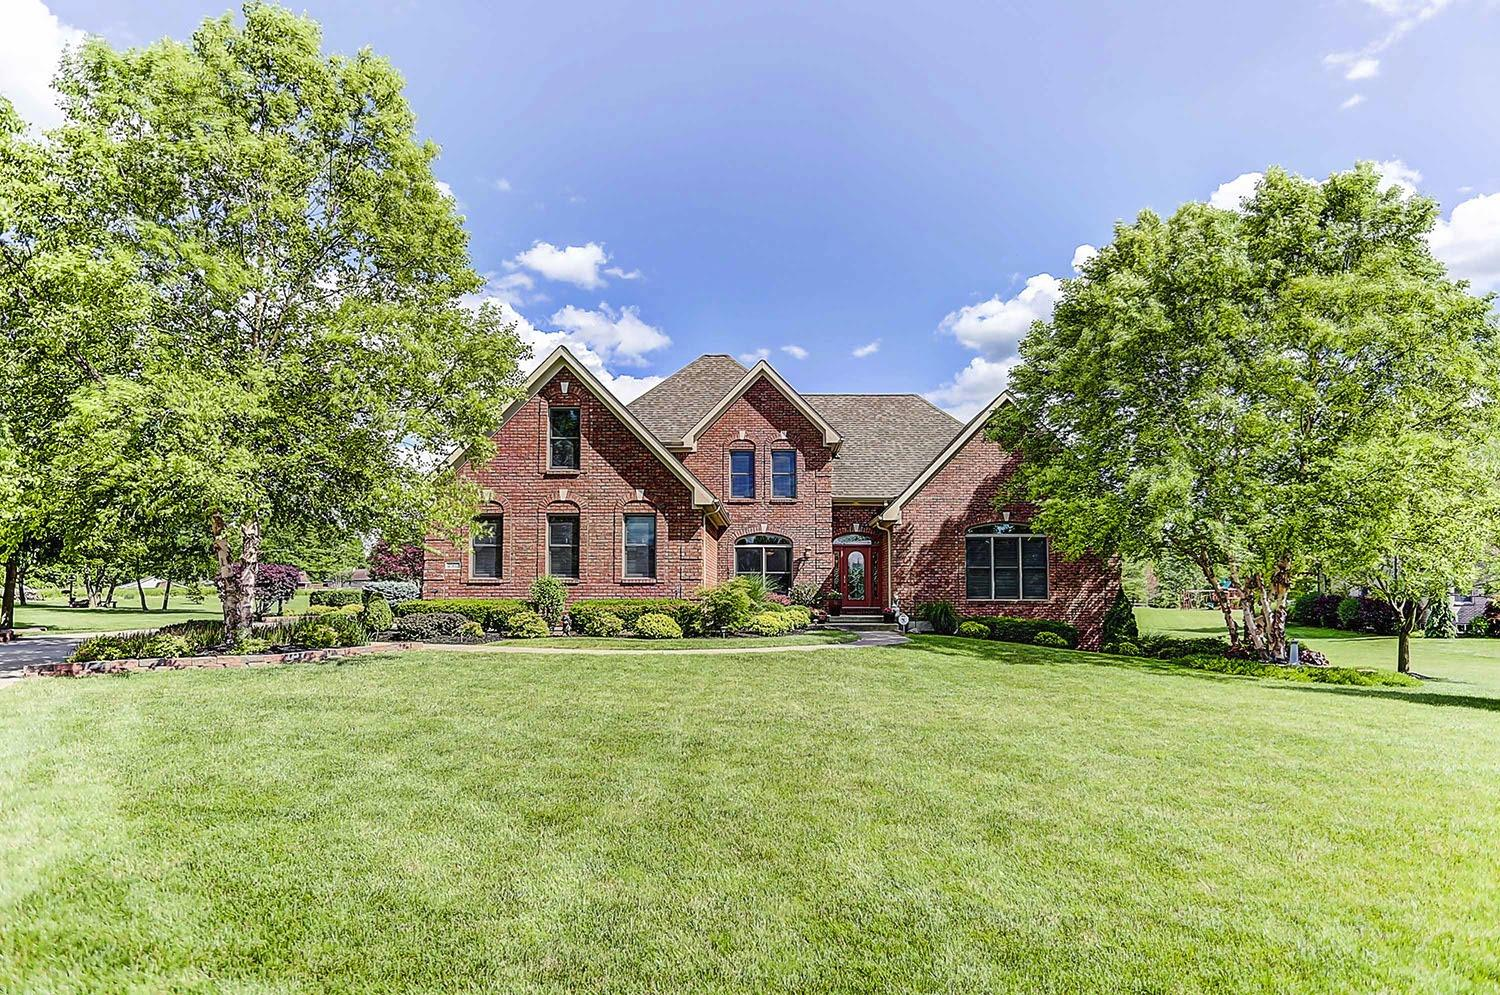 4962 Deerfield Trl Clear Creek Twp., OH